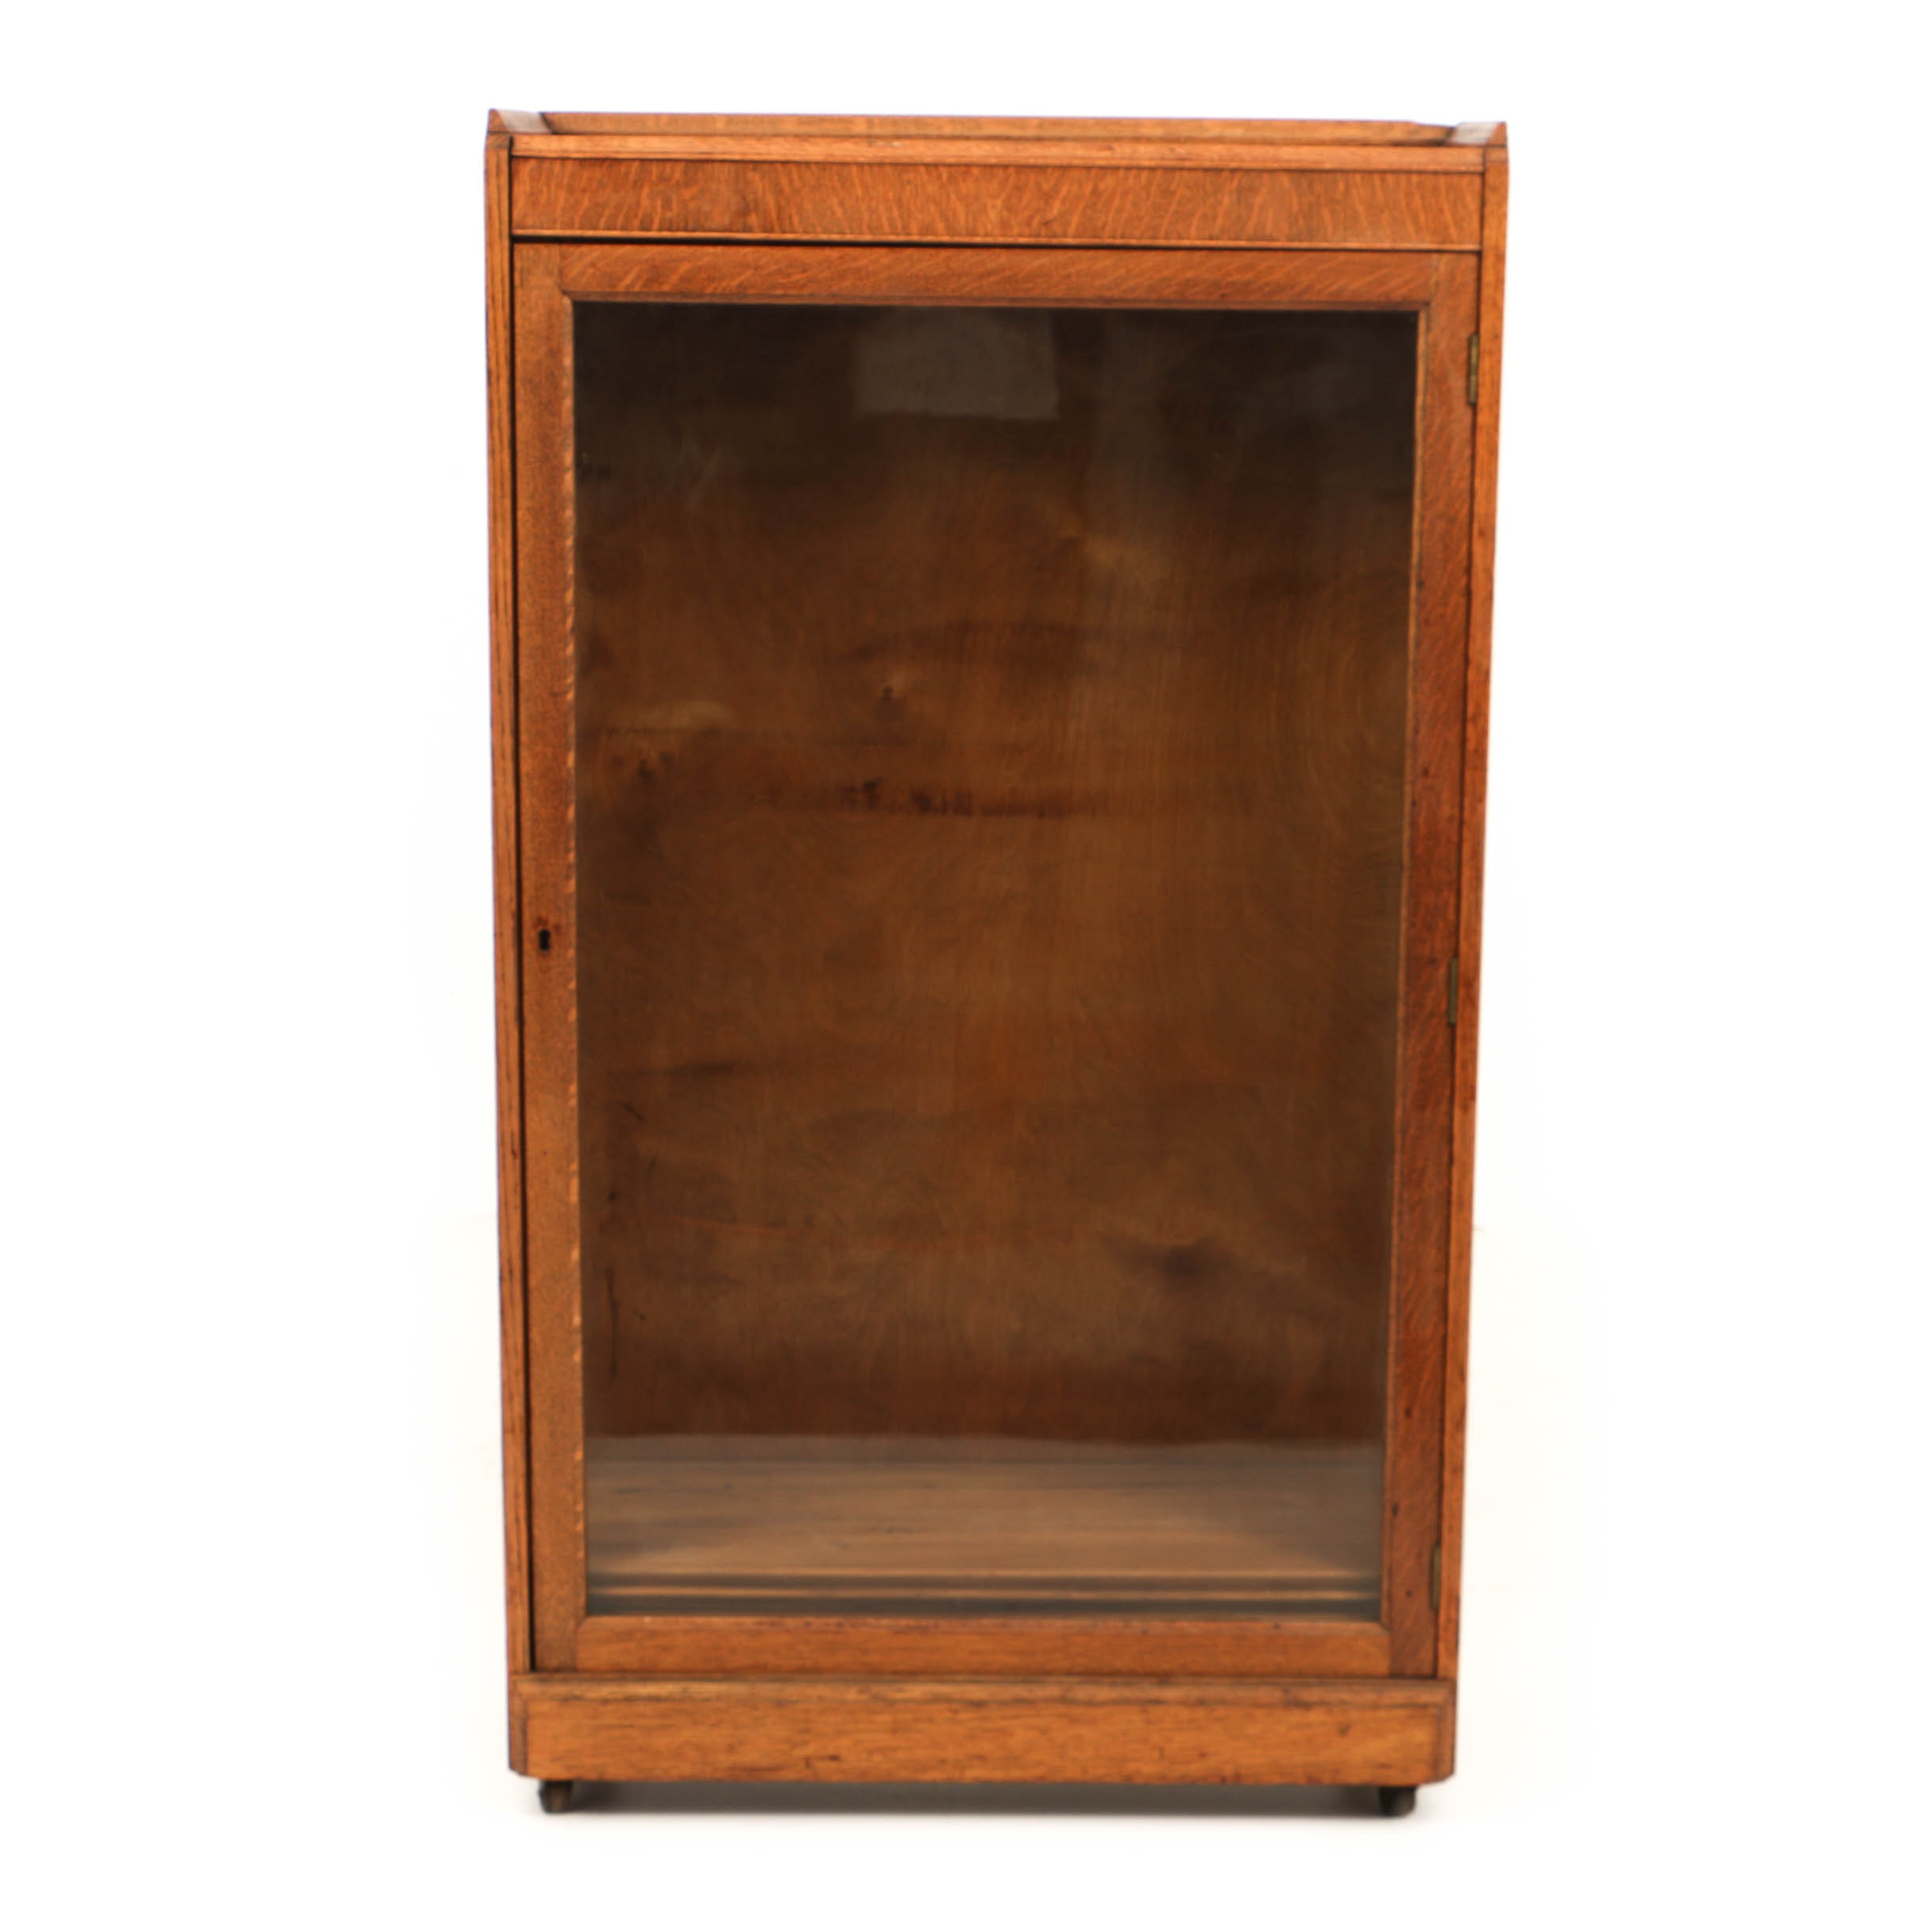 Early 20th Century Oak Glazed-Door Bookcase